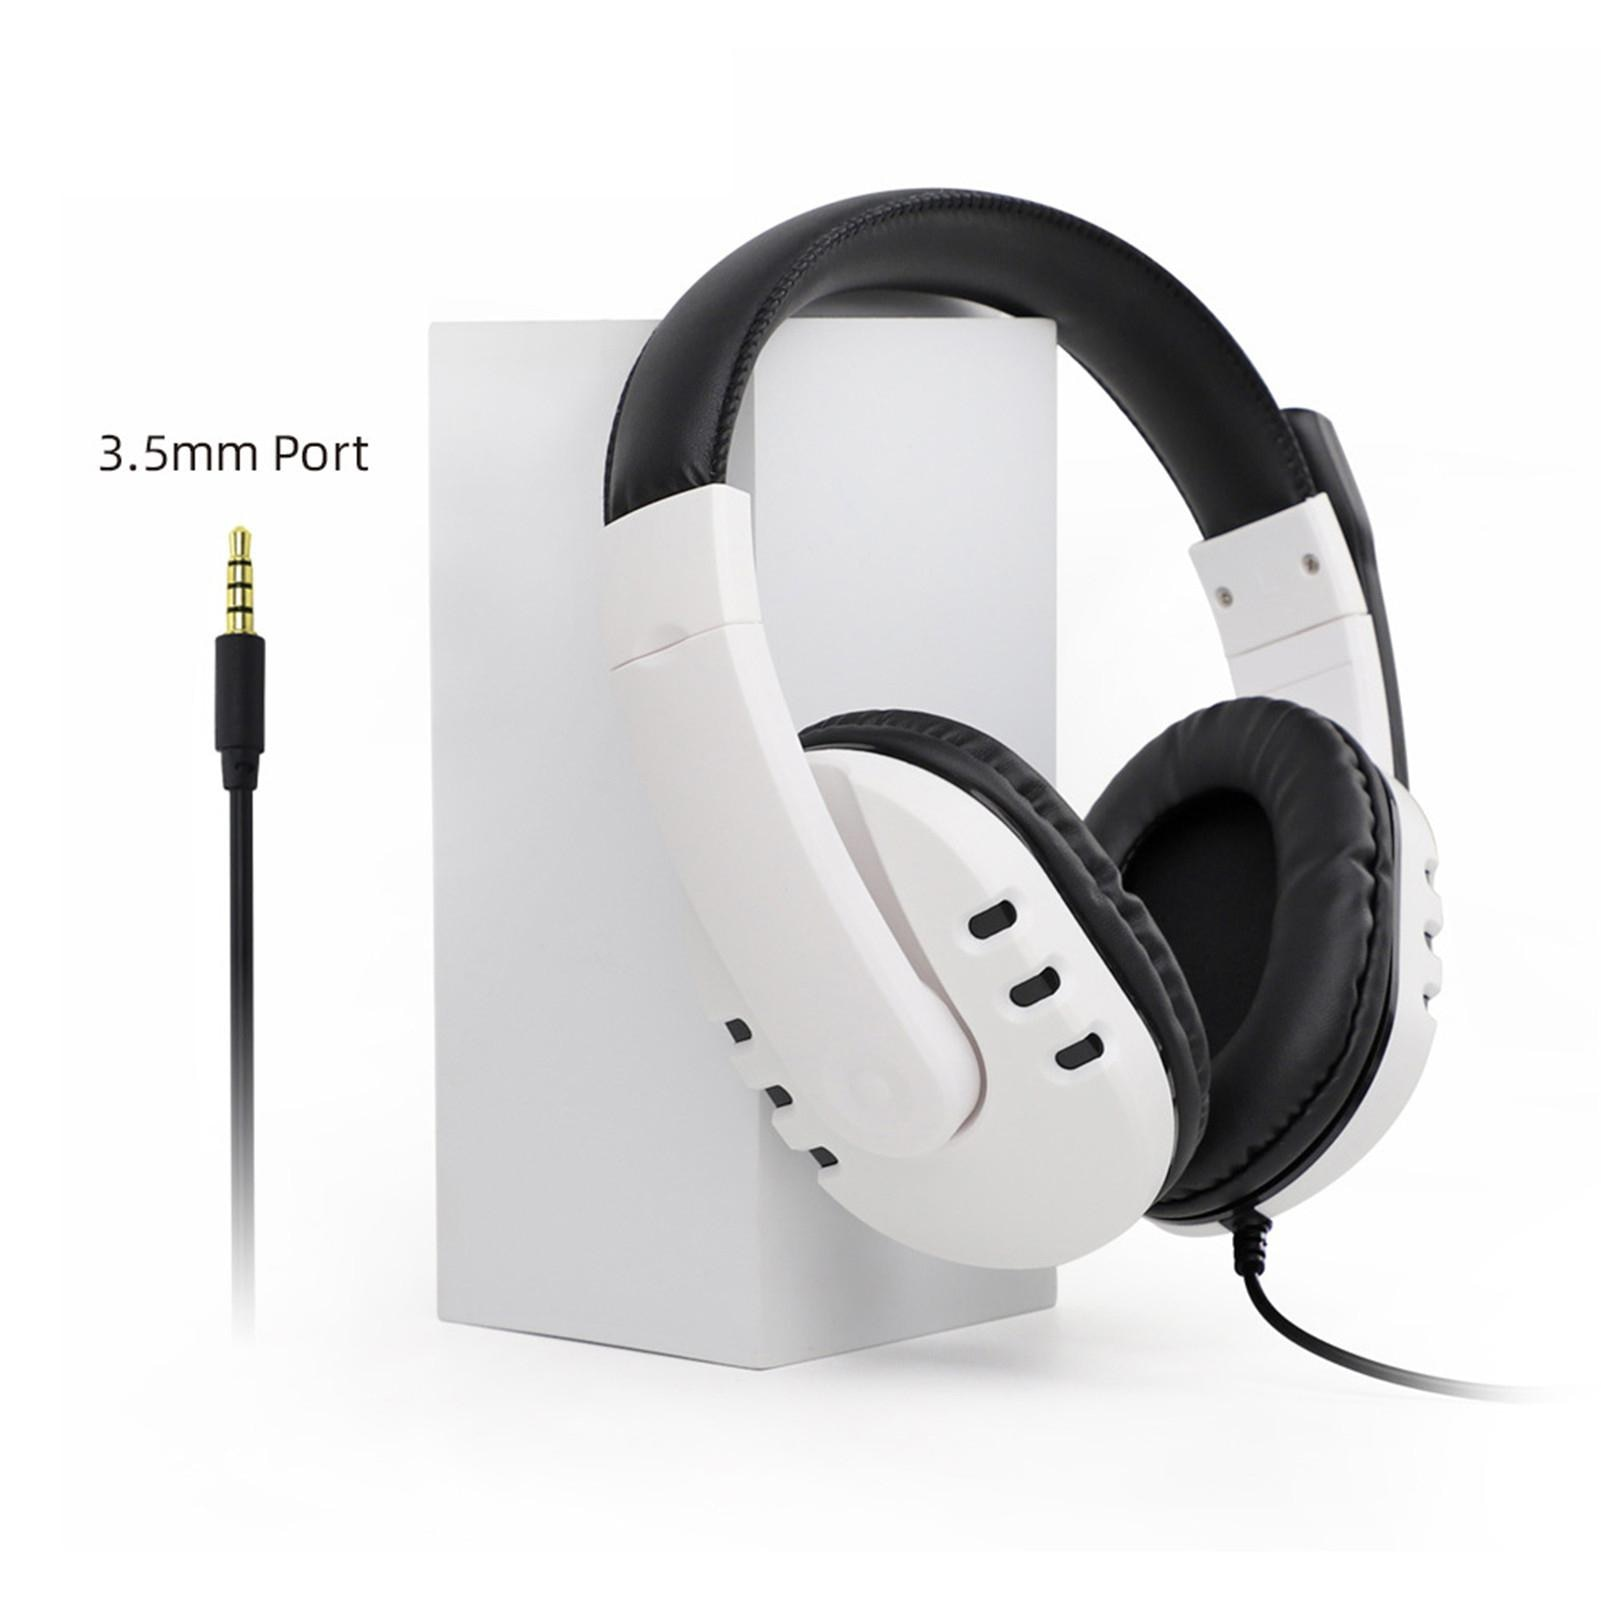 Headset Wired Stereo Surround Plastic Head-mounted Gaming Headphone for PS5 PS4 Pro/Slim Xbox One Series X/S Computer Laptop